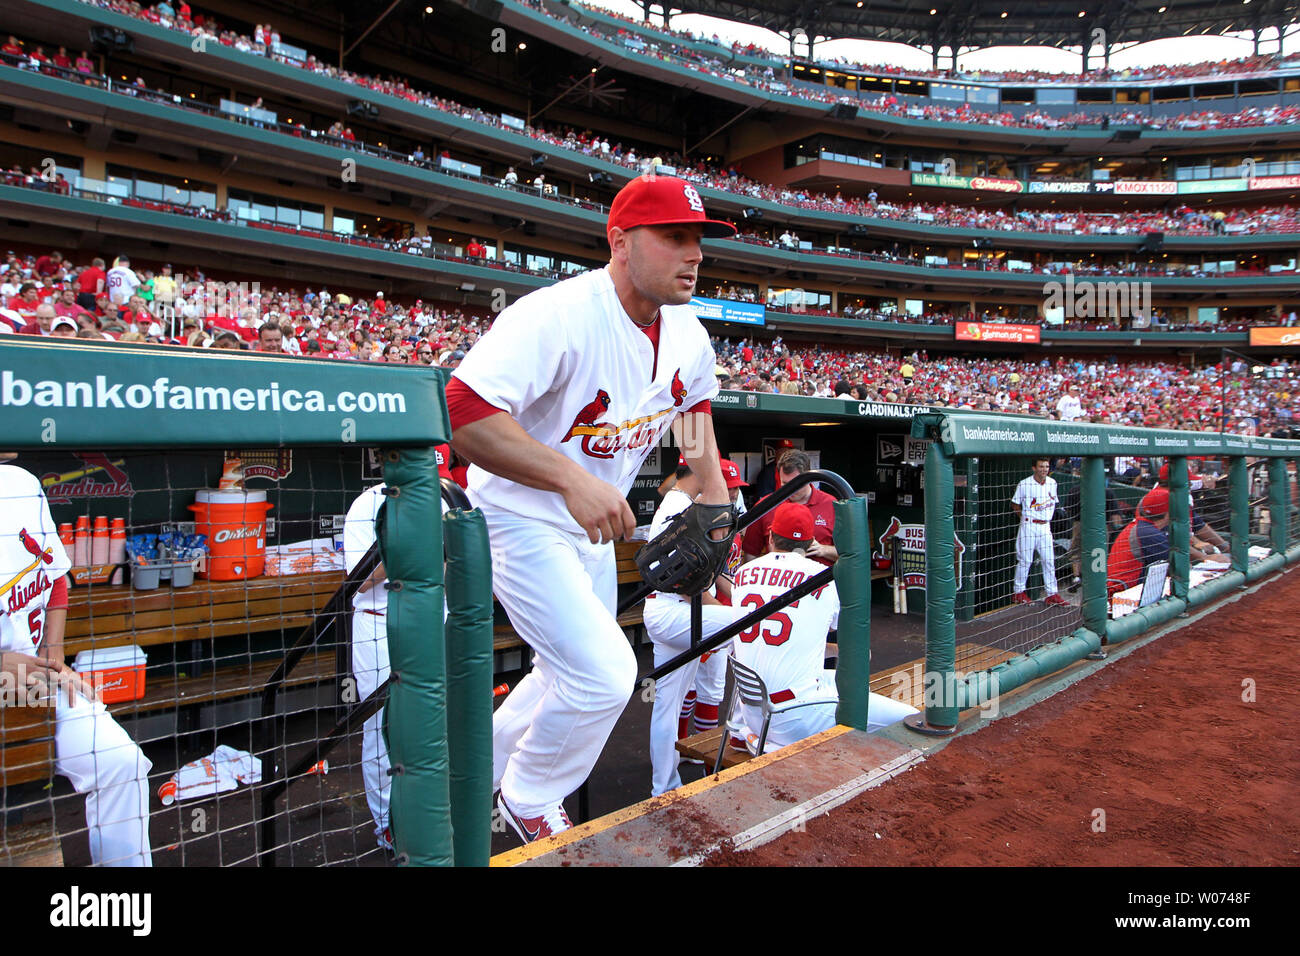 St. Louis Cardinals Matt Holliday takes to the field for a game against the Chicago White Sox at Busch Stadium in St. Louis on June 12, 2012. Holliday has missed the last two games due to leg soreness.  UPI/Bill Greenblatt - Stock Image